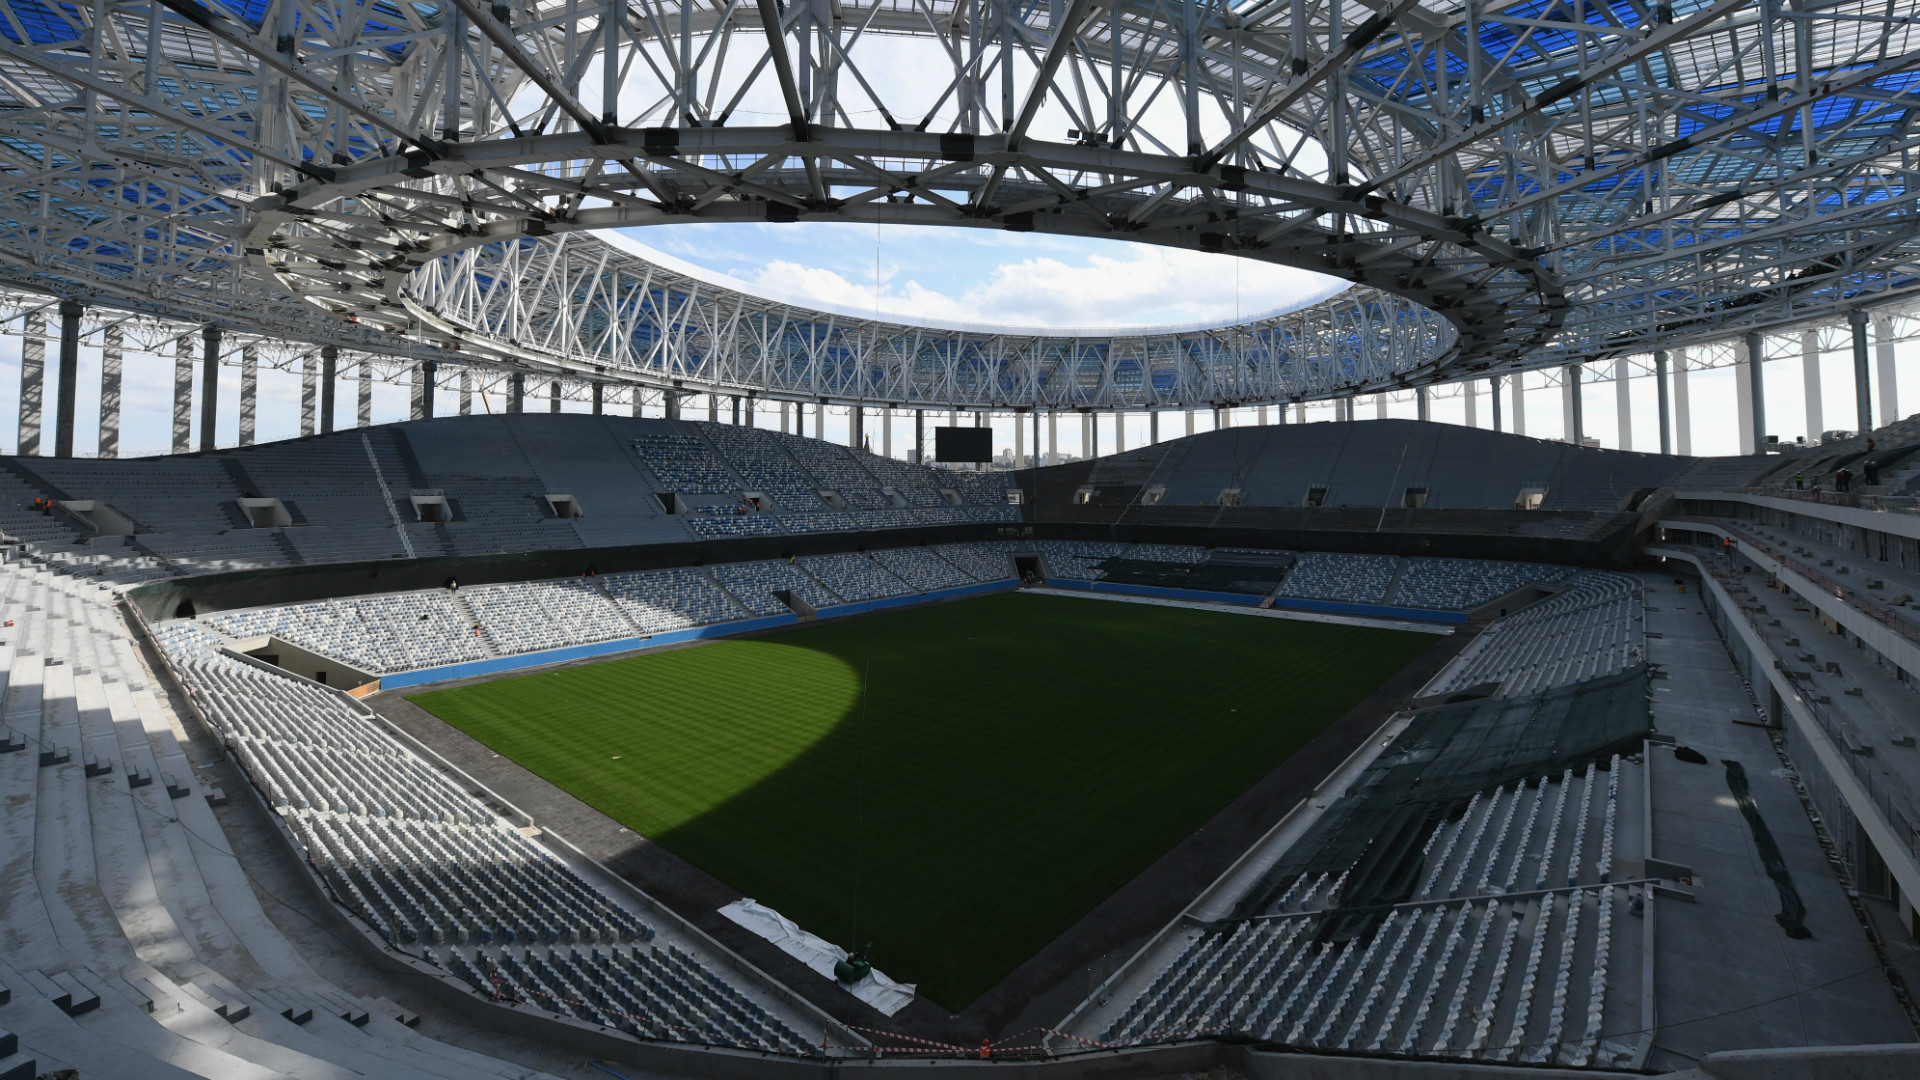 Stadium Manpower Reserves in Kazan: description, address 75